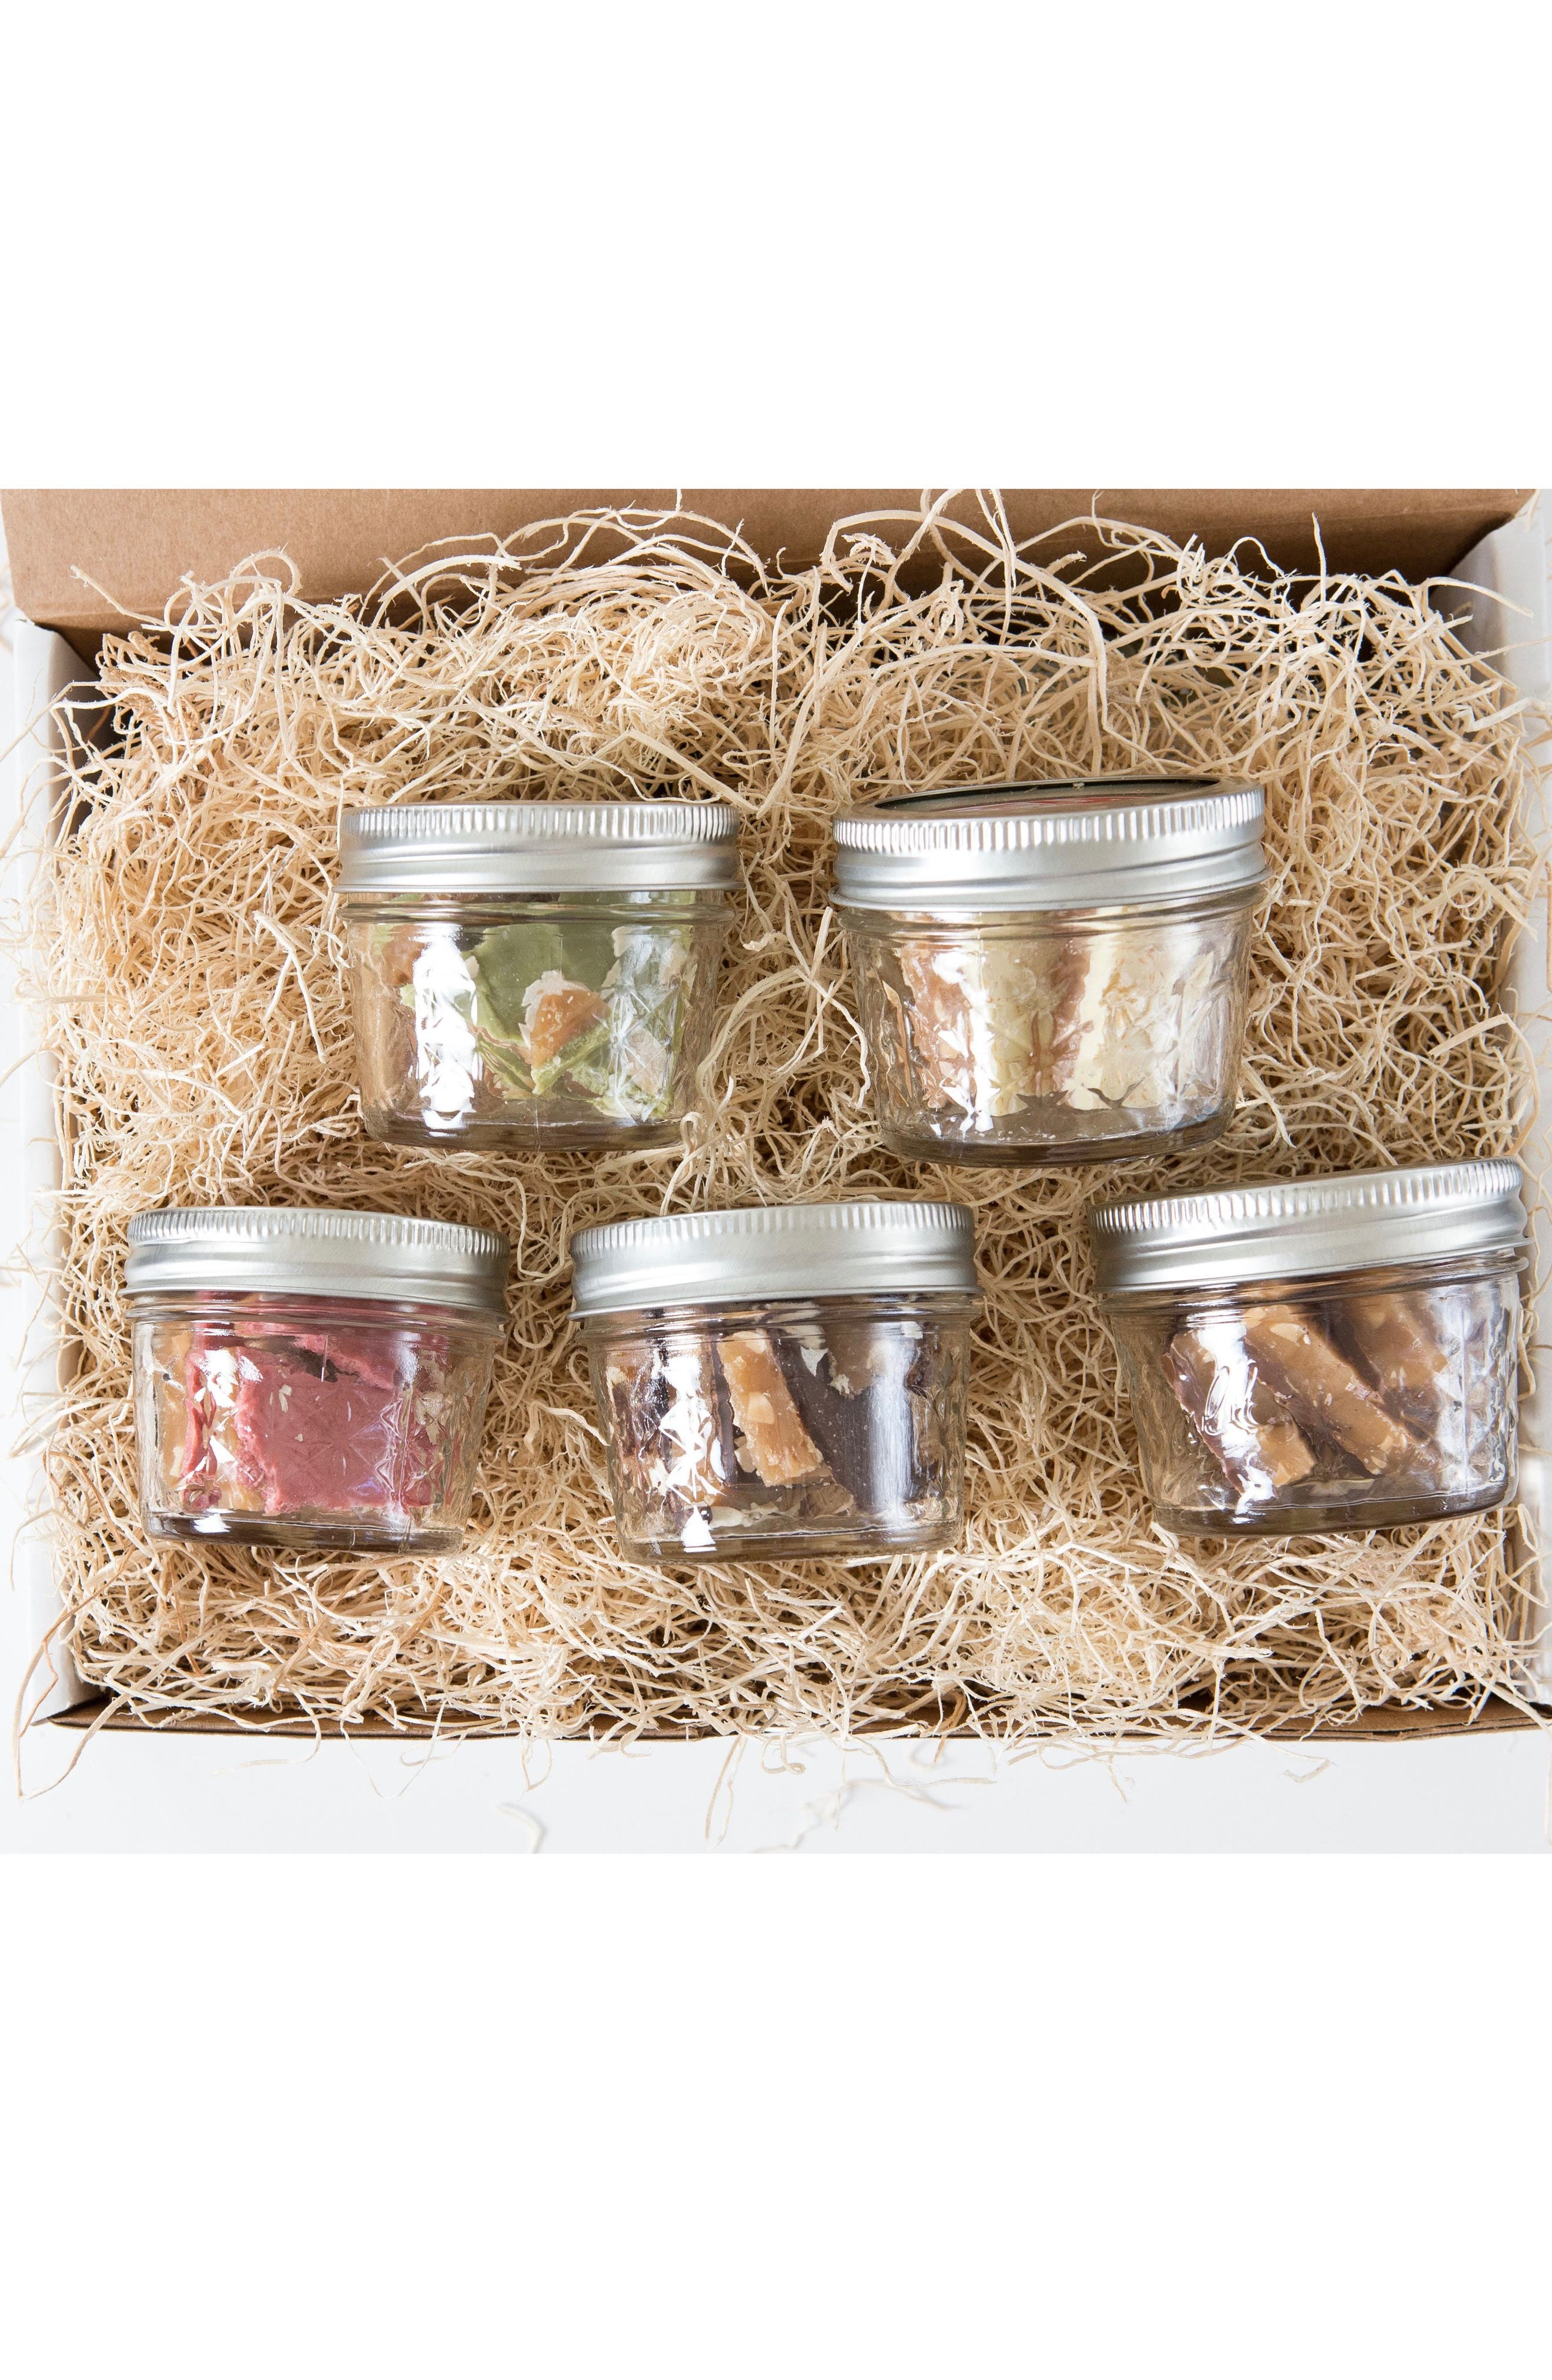 Take a Flight to Toffee Land 5-Pack Toffee Gift Set,                             Alternate thumbnail 4, color,                             200